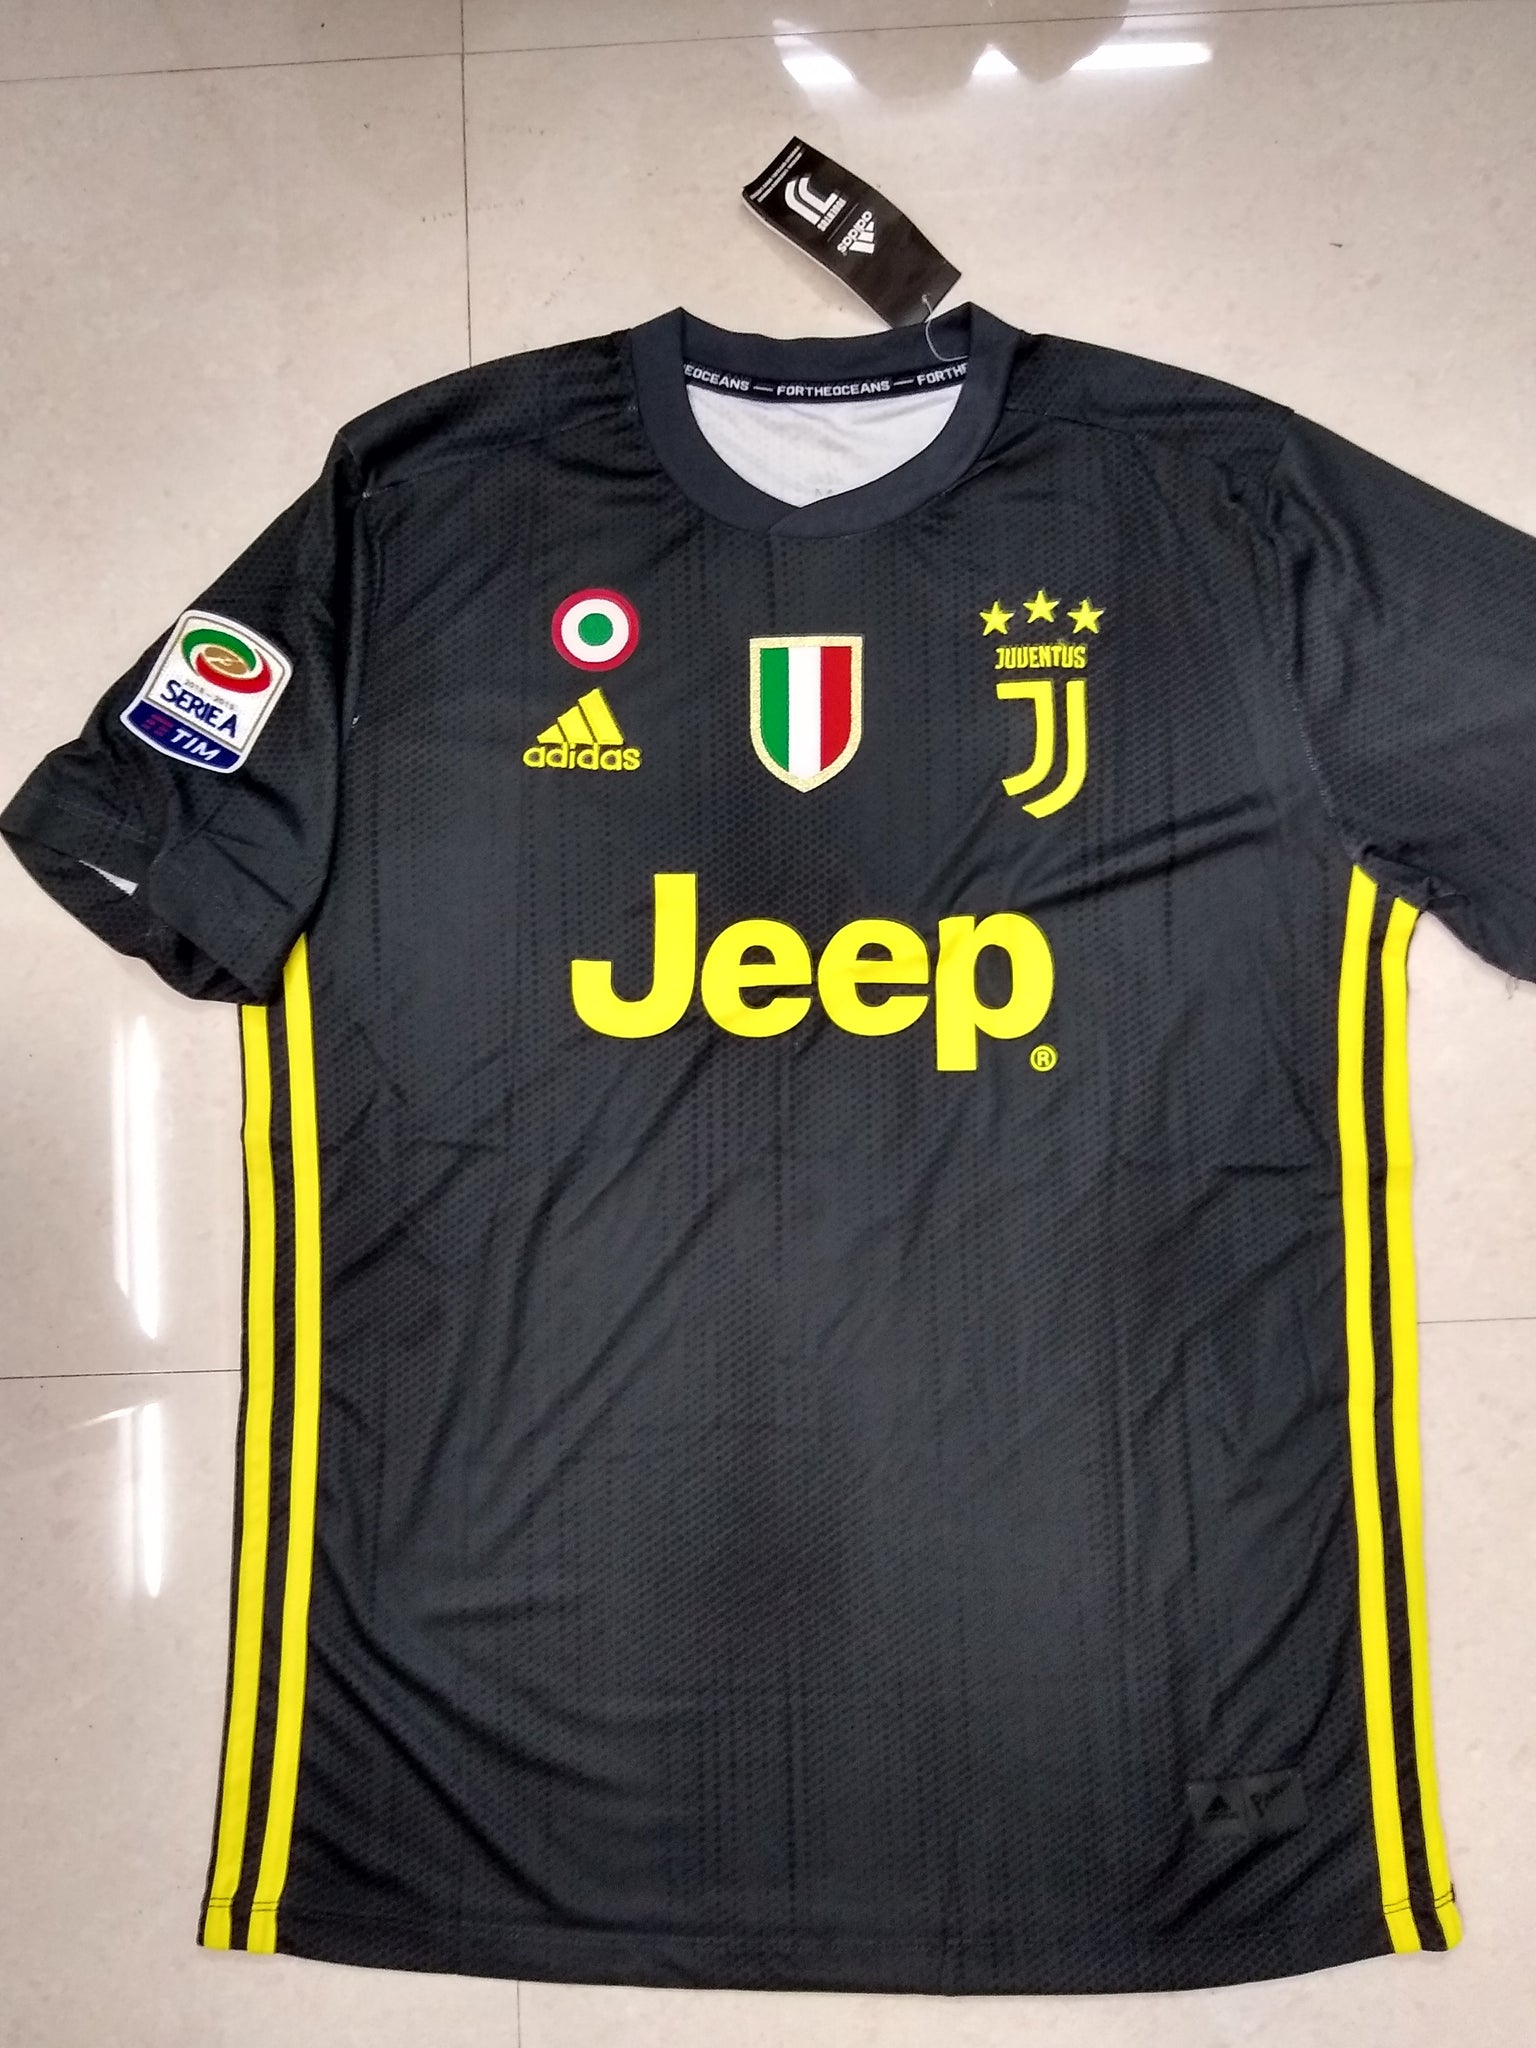 on sale 01560 fcb8c Juventus Ronaldo Home Football Jersey Season 2018-19 online ...